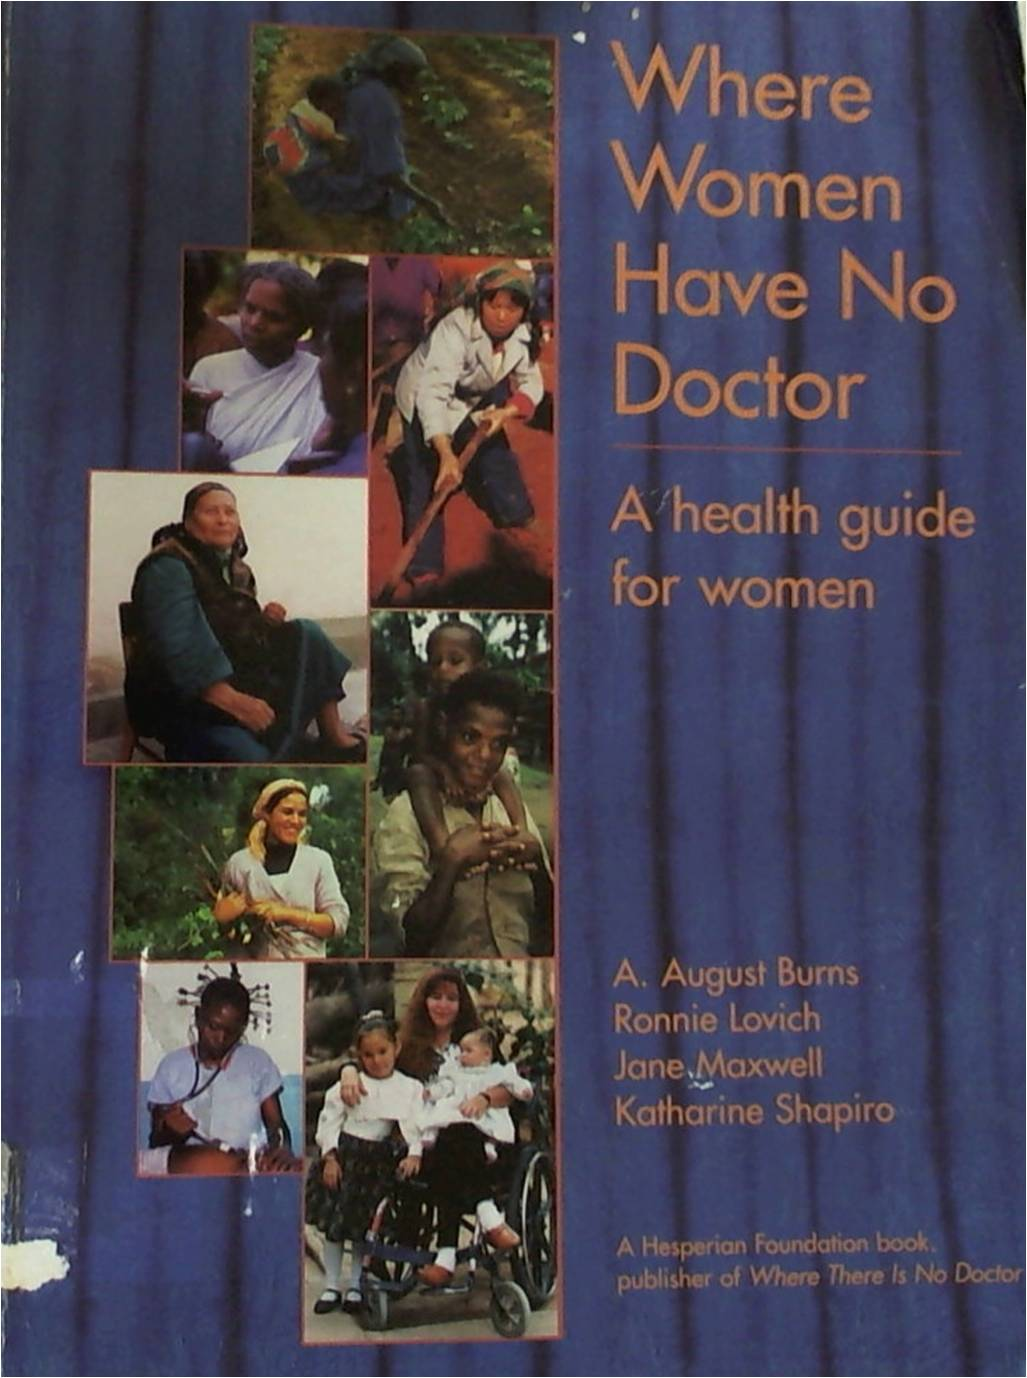 Where Women Have No Doctor : Heatlh Guide For Women